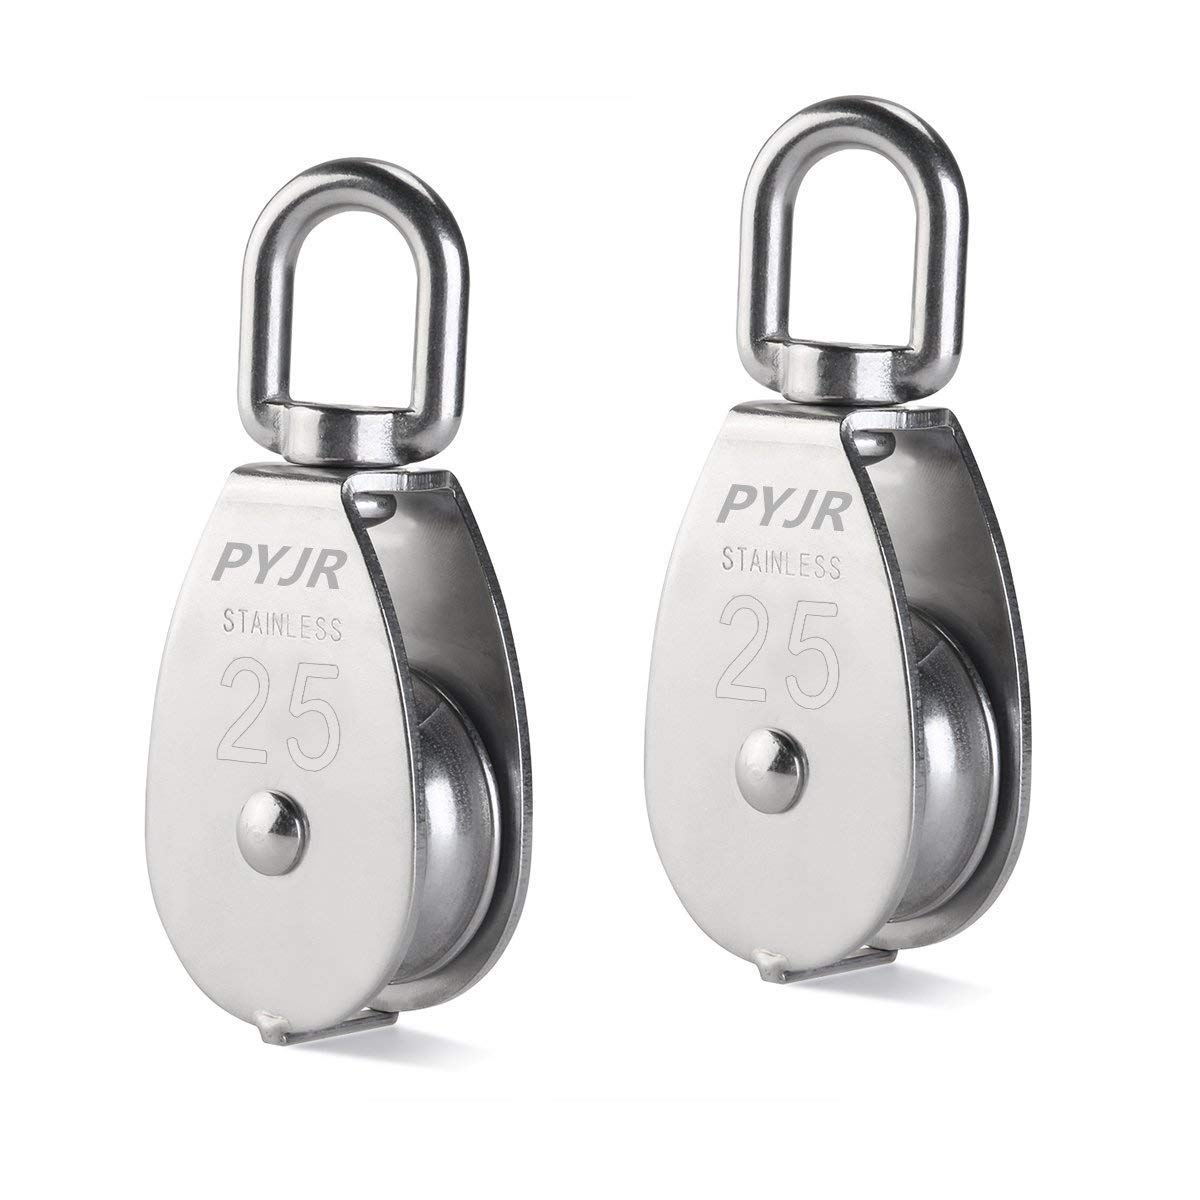 M25 Pulley, 25MM Single Pulley Block in 304 Stainless Steel Roller (Pack of 2)